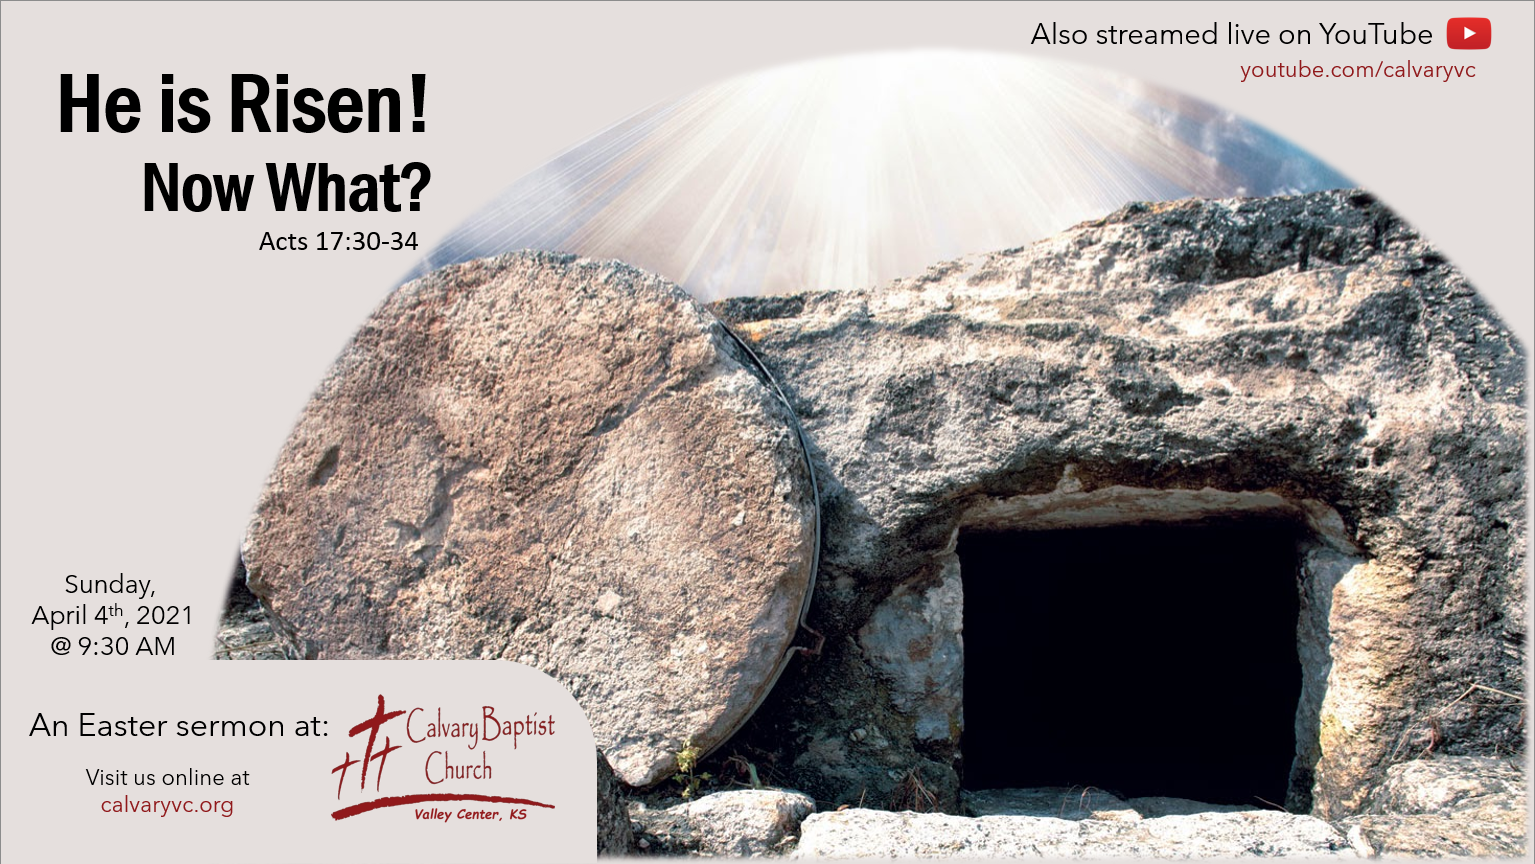 He is Risen! Now What?